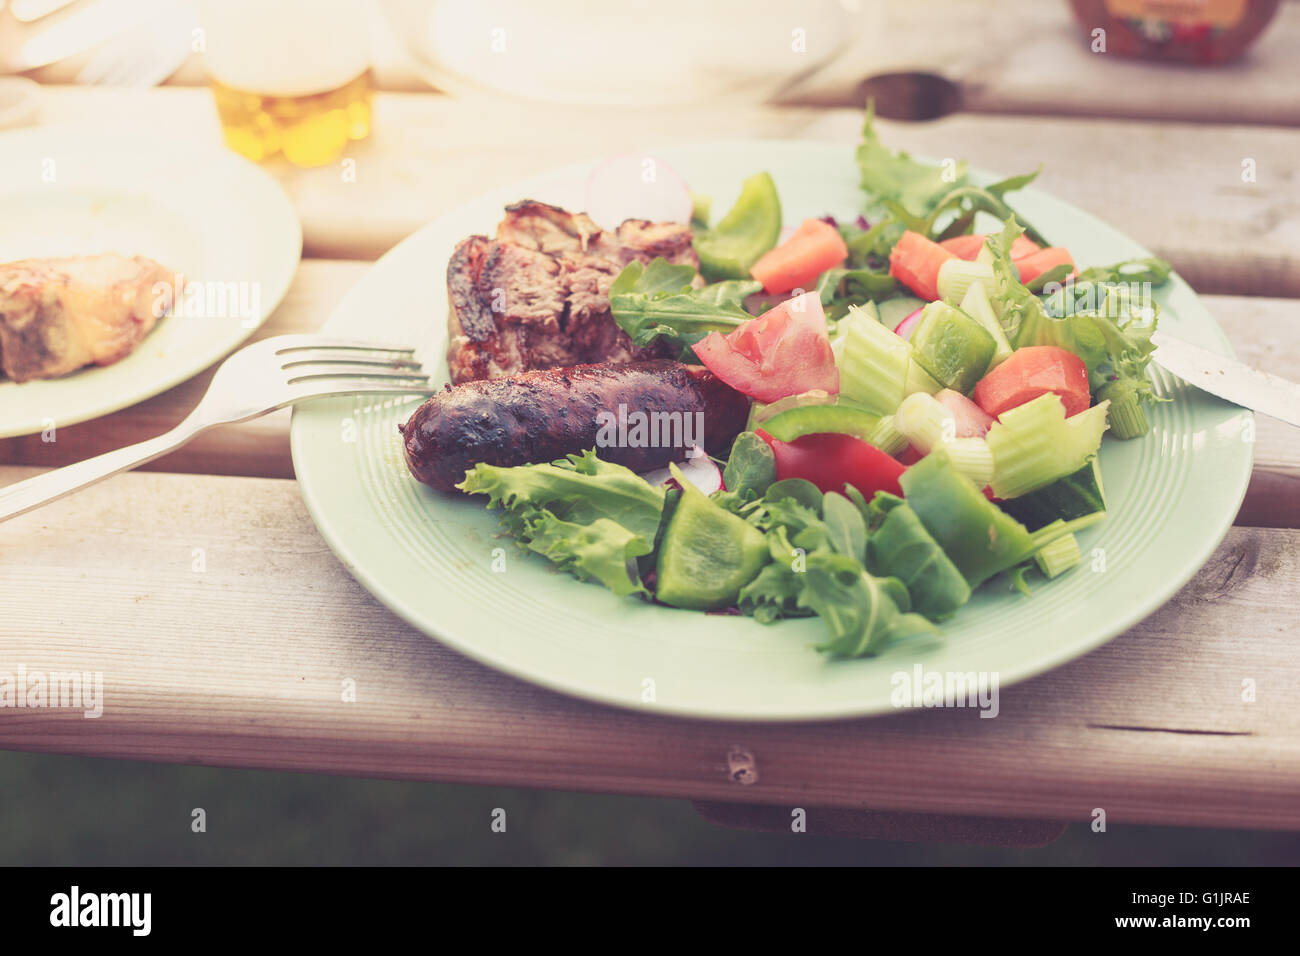 A plate with salad and freshly barbecued meat on a table outside on a sunny day - Stock Image